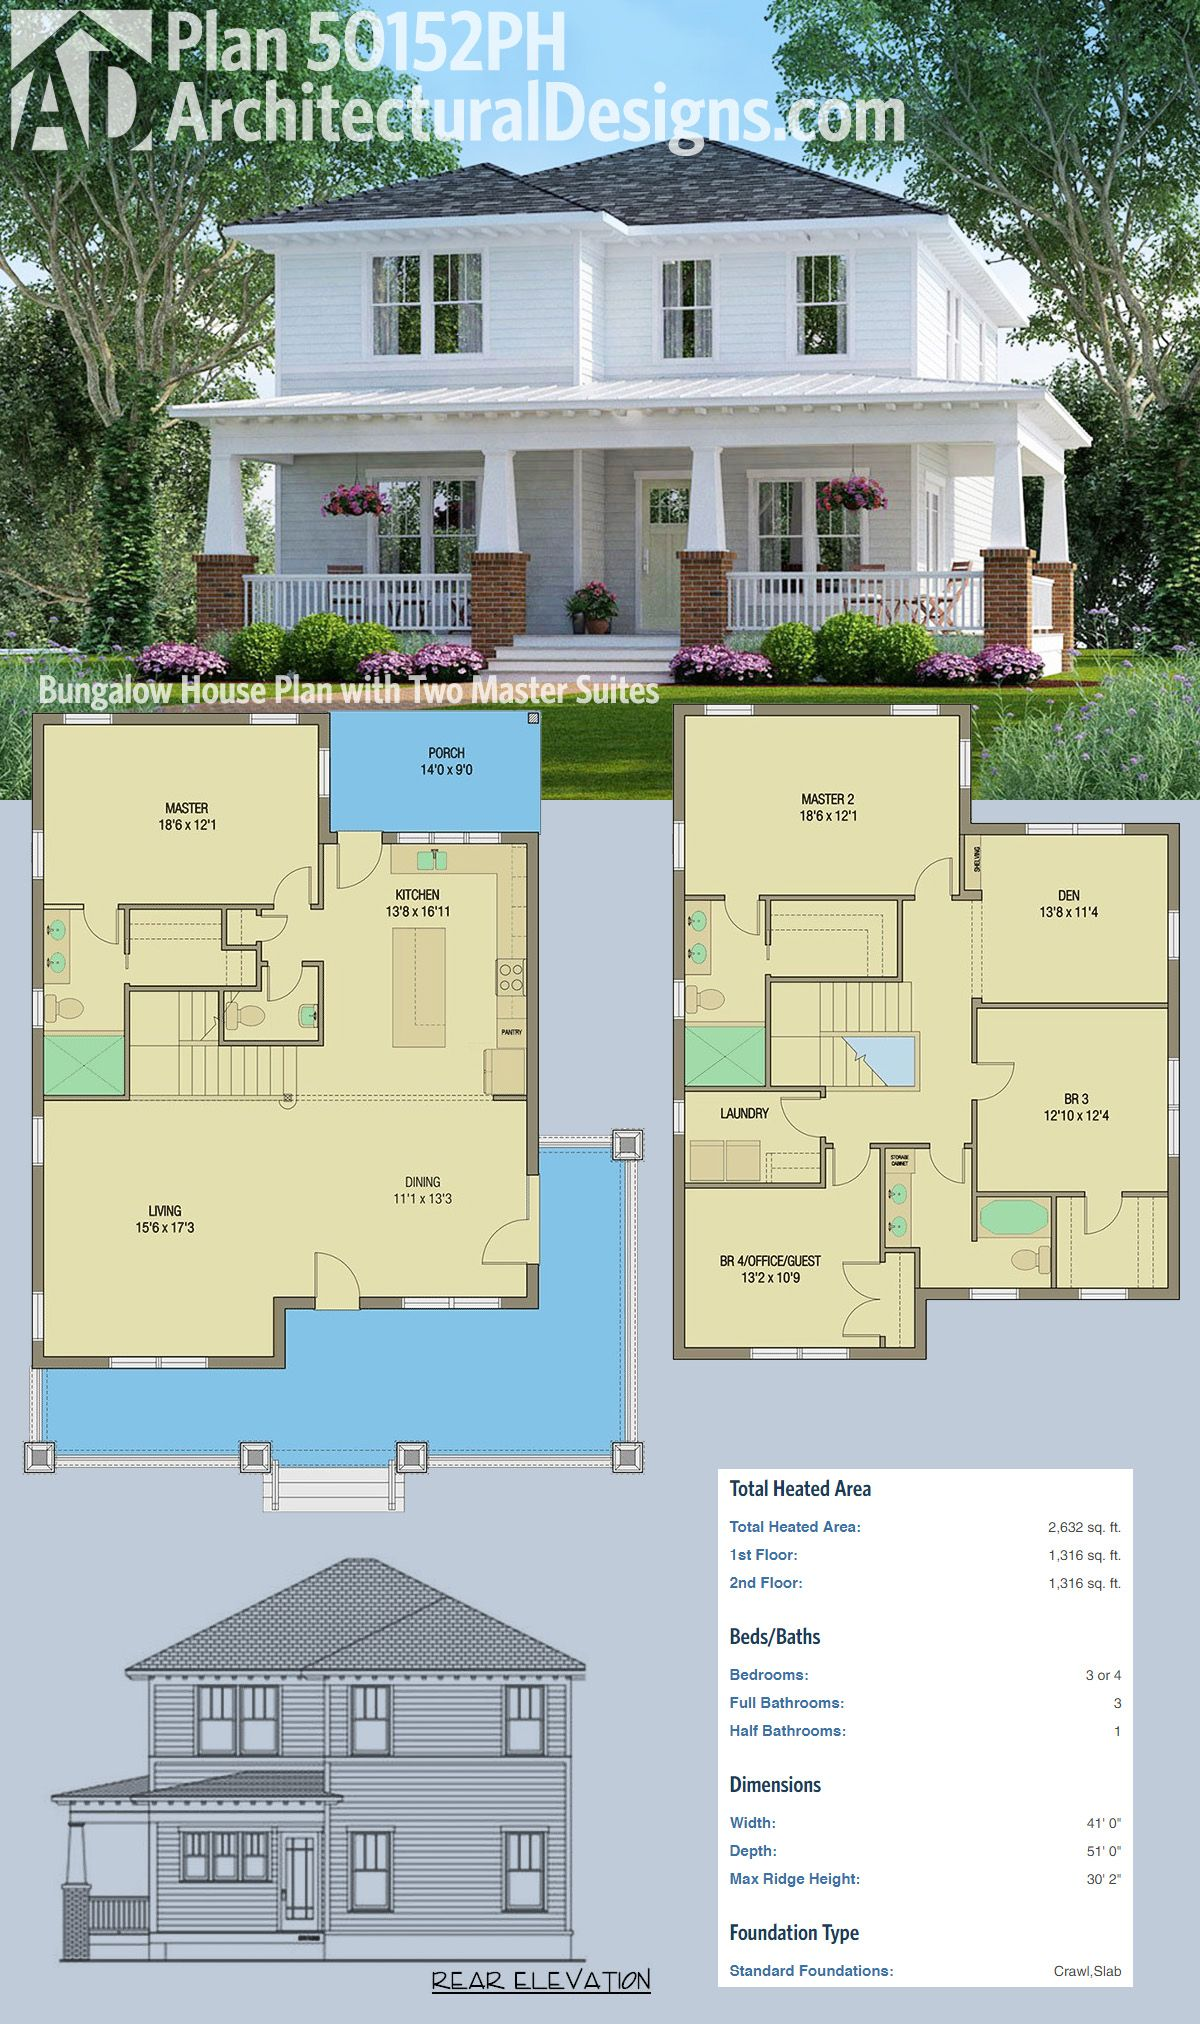 Plan 50152PH: Bungalow House Plan with Two Master Suites | Floor ...